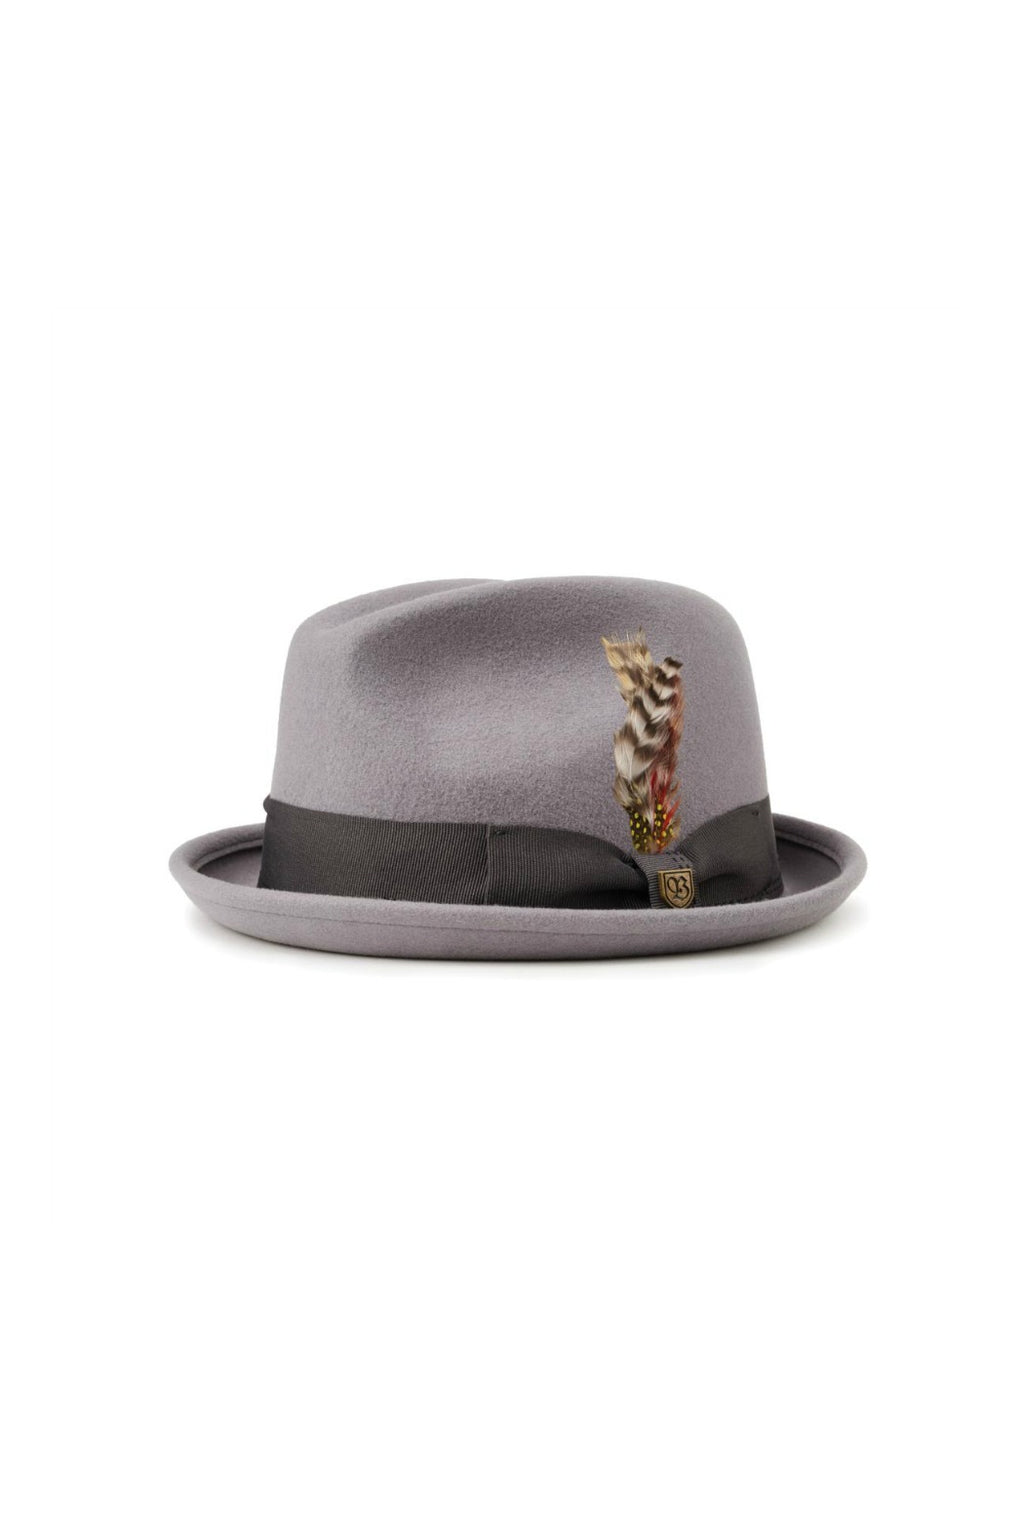 Brixton Gain Fedora in Light Grey/Charcoal